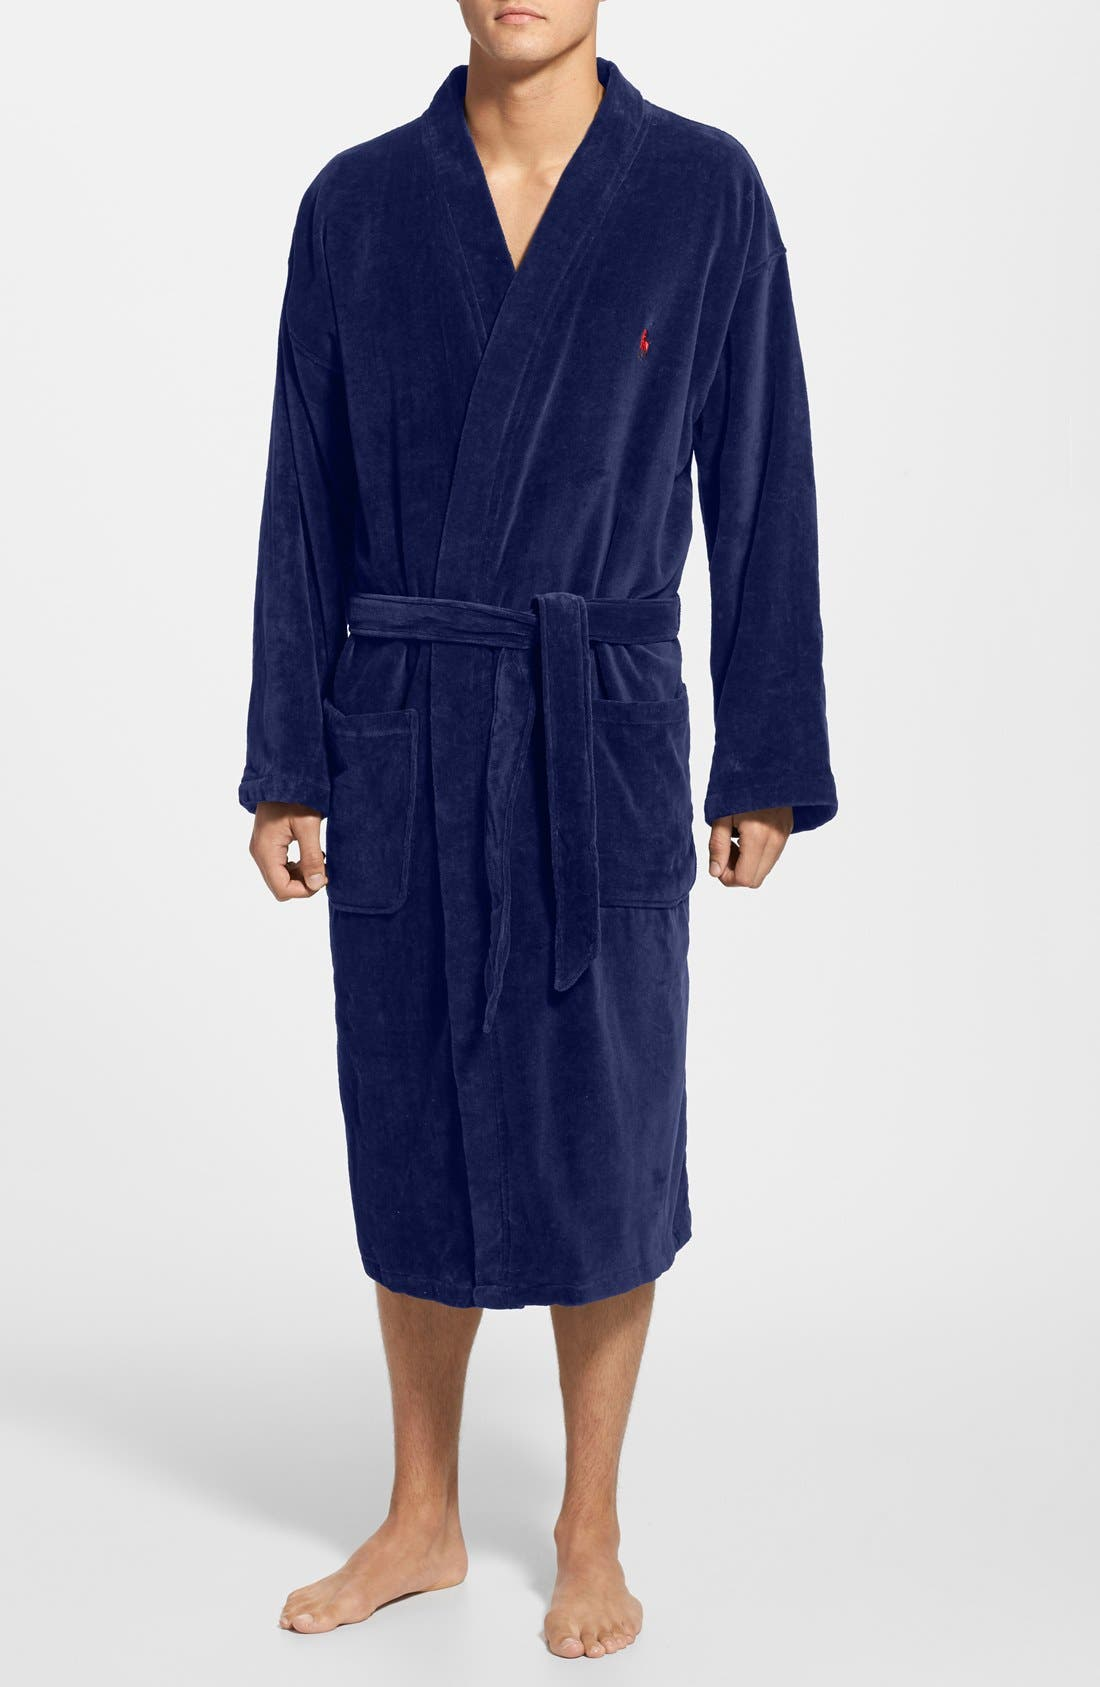 POLO RALPH LAUREN, Cotton Fleece Robe, Main thumbnail 1, color, NAVY